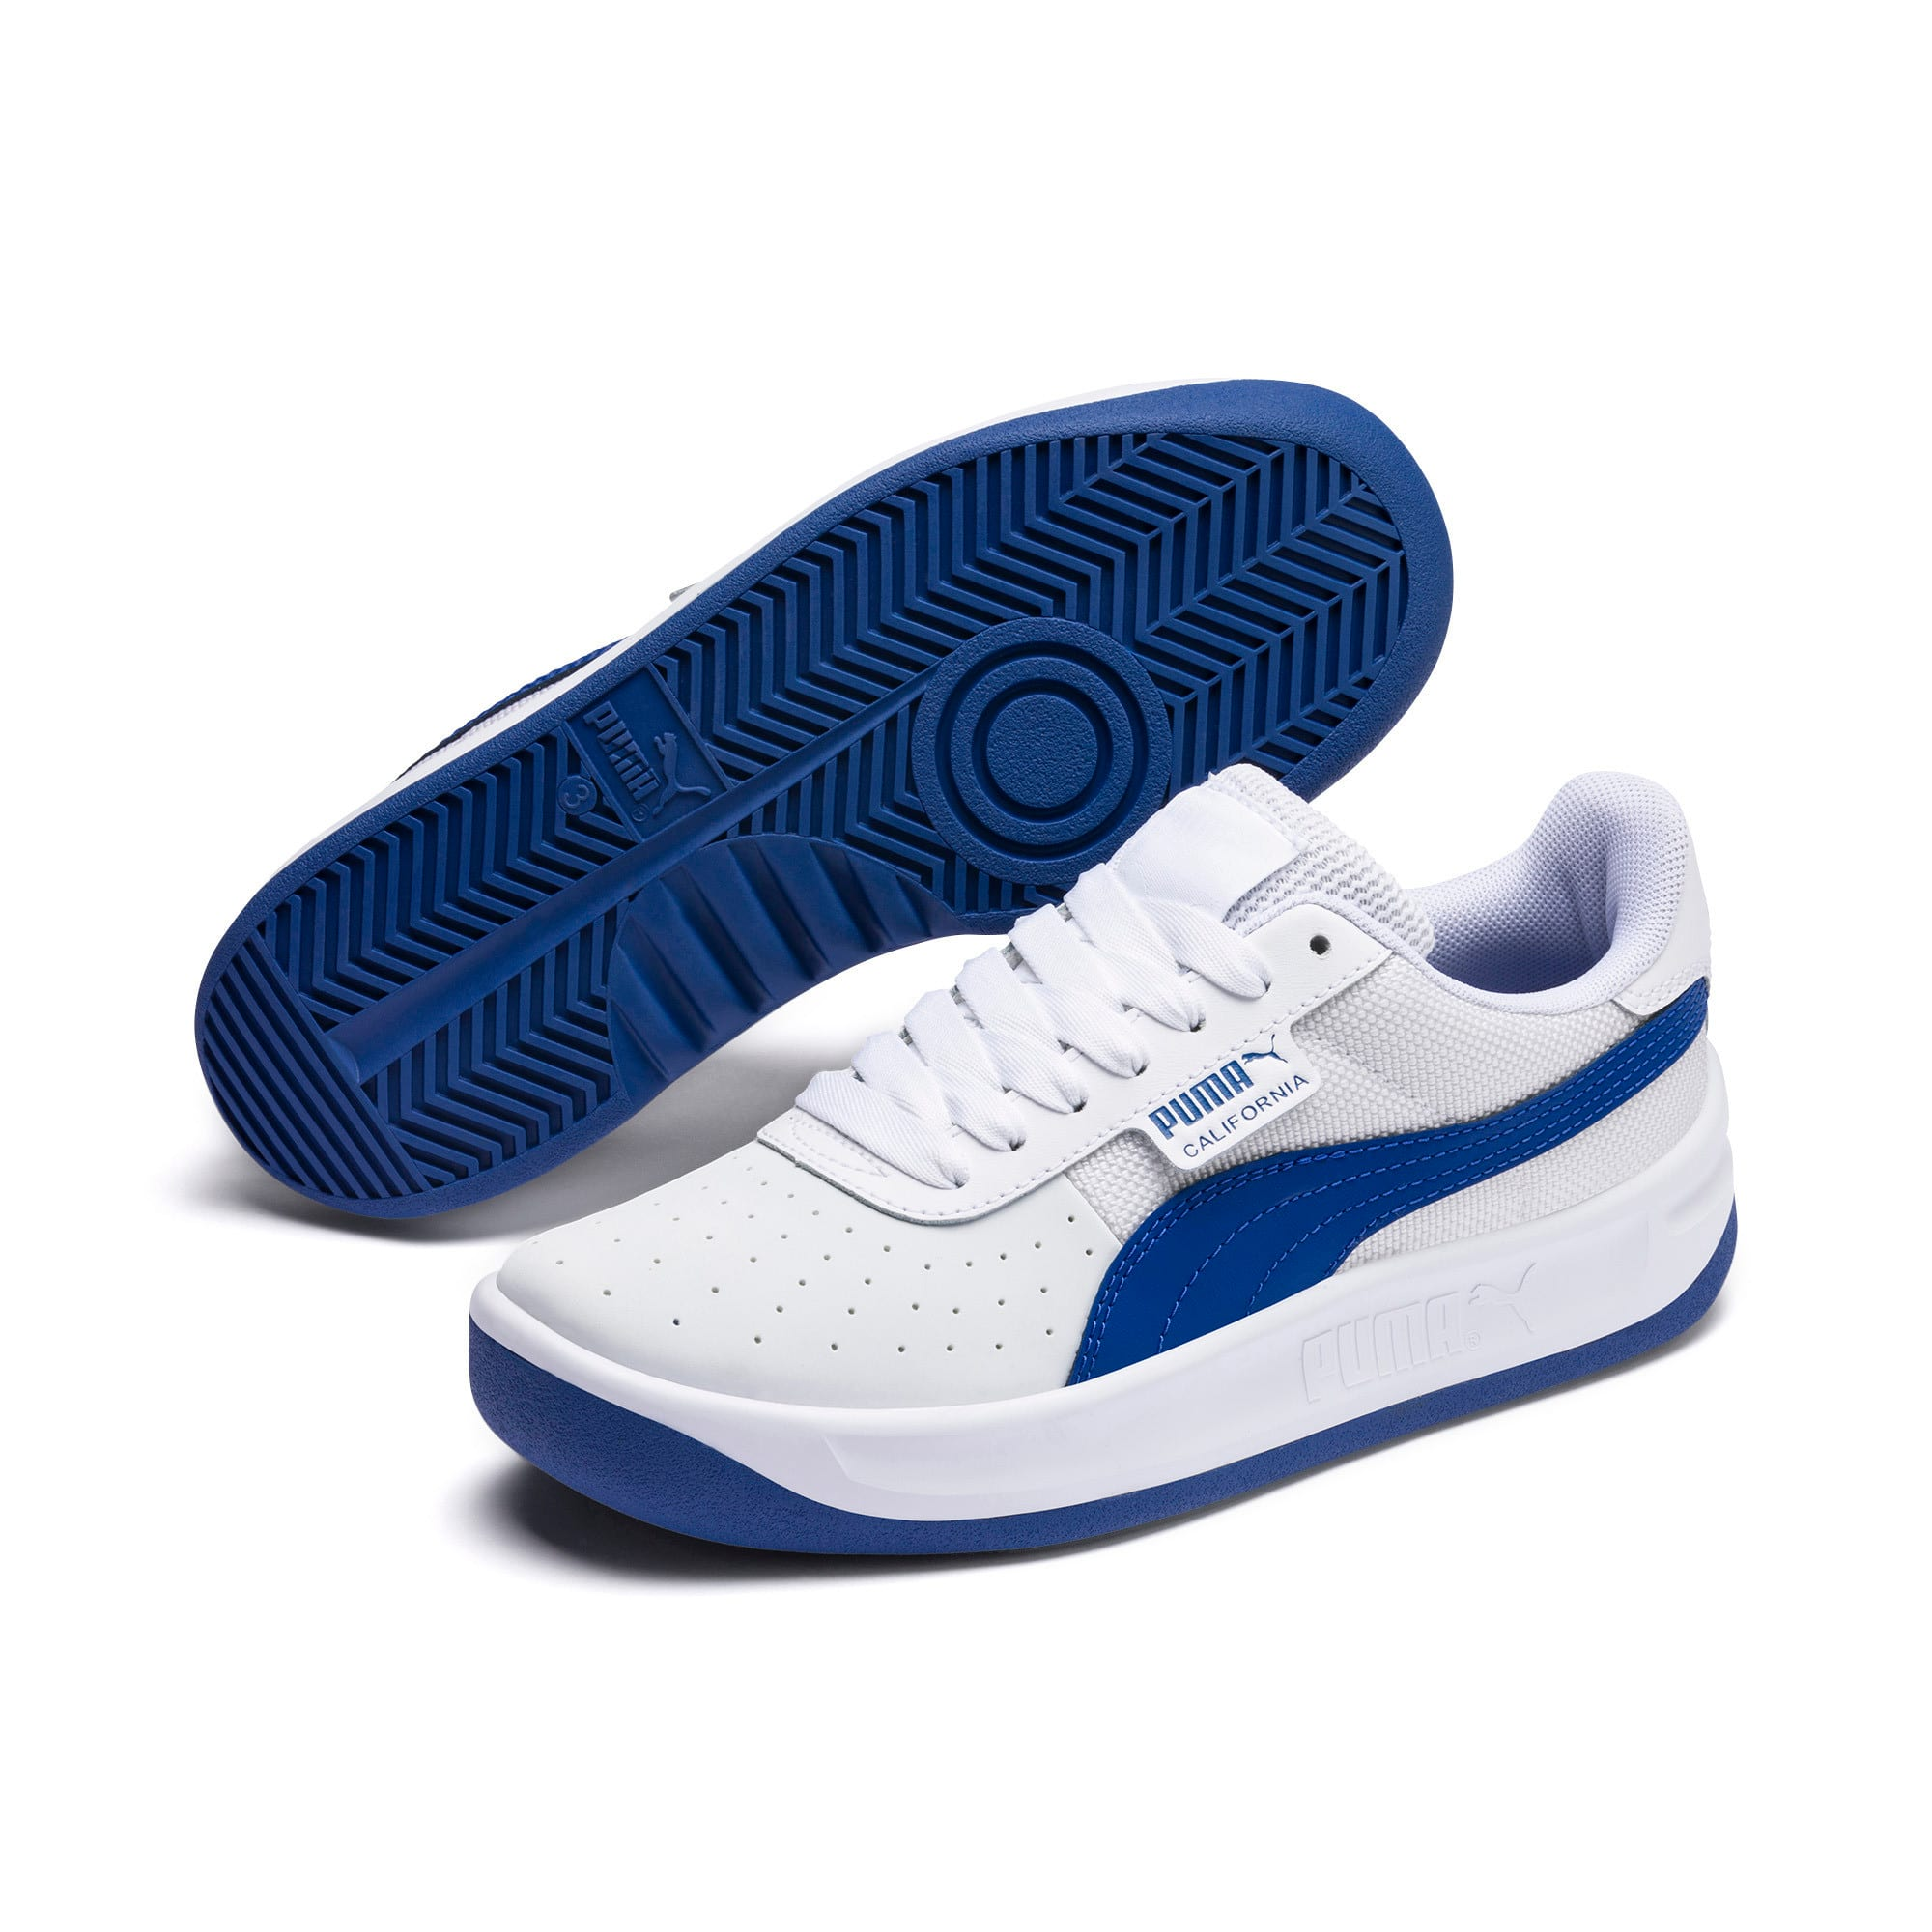 Thumbnail 2 of California Sneakers JR, Puma White-Galaxy Blue, medium